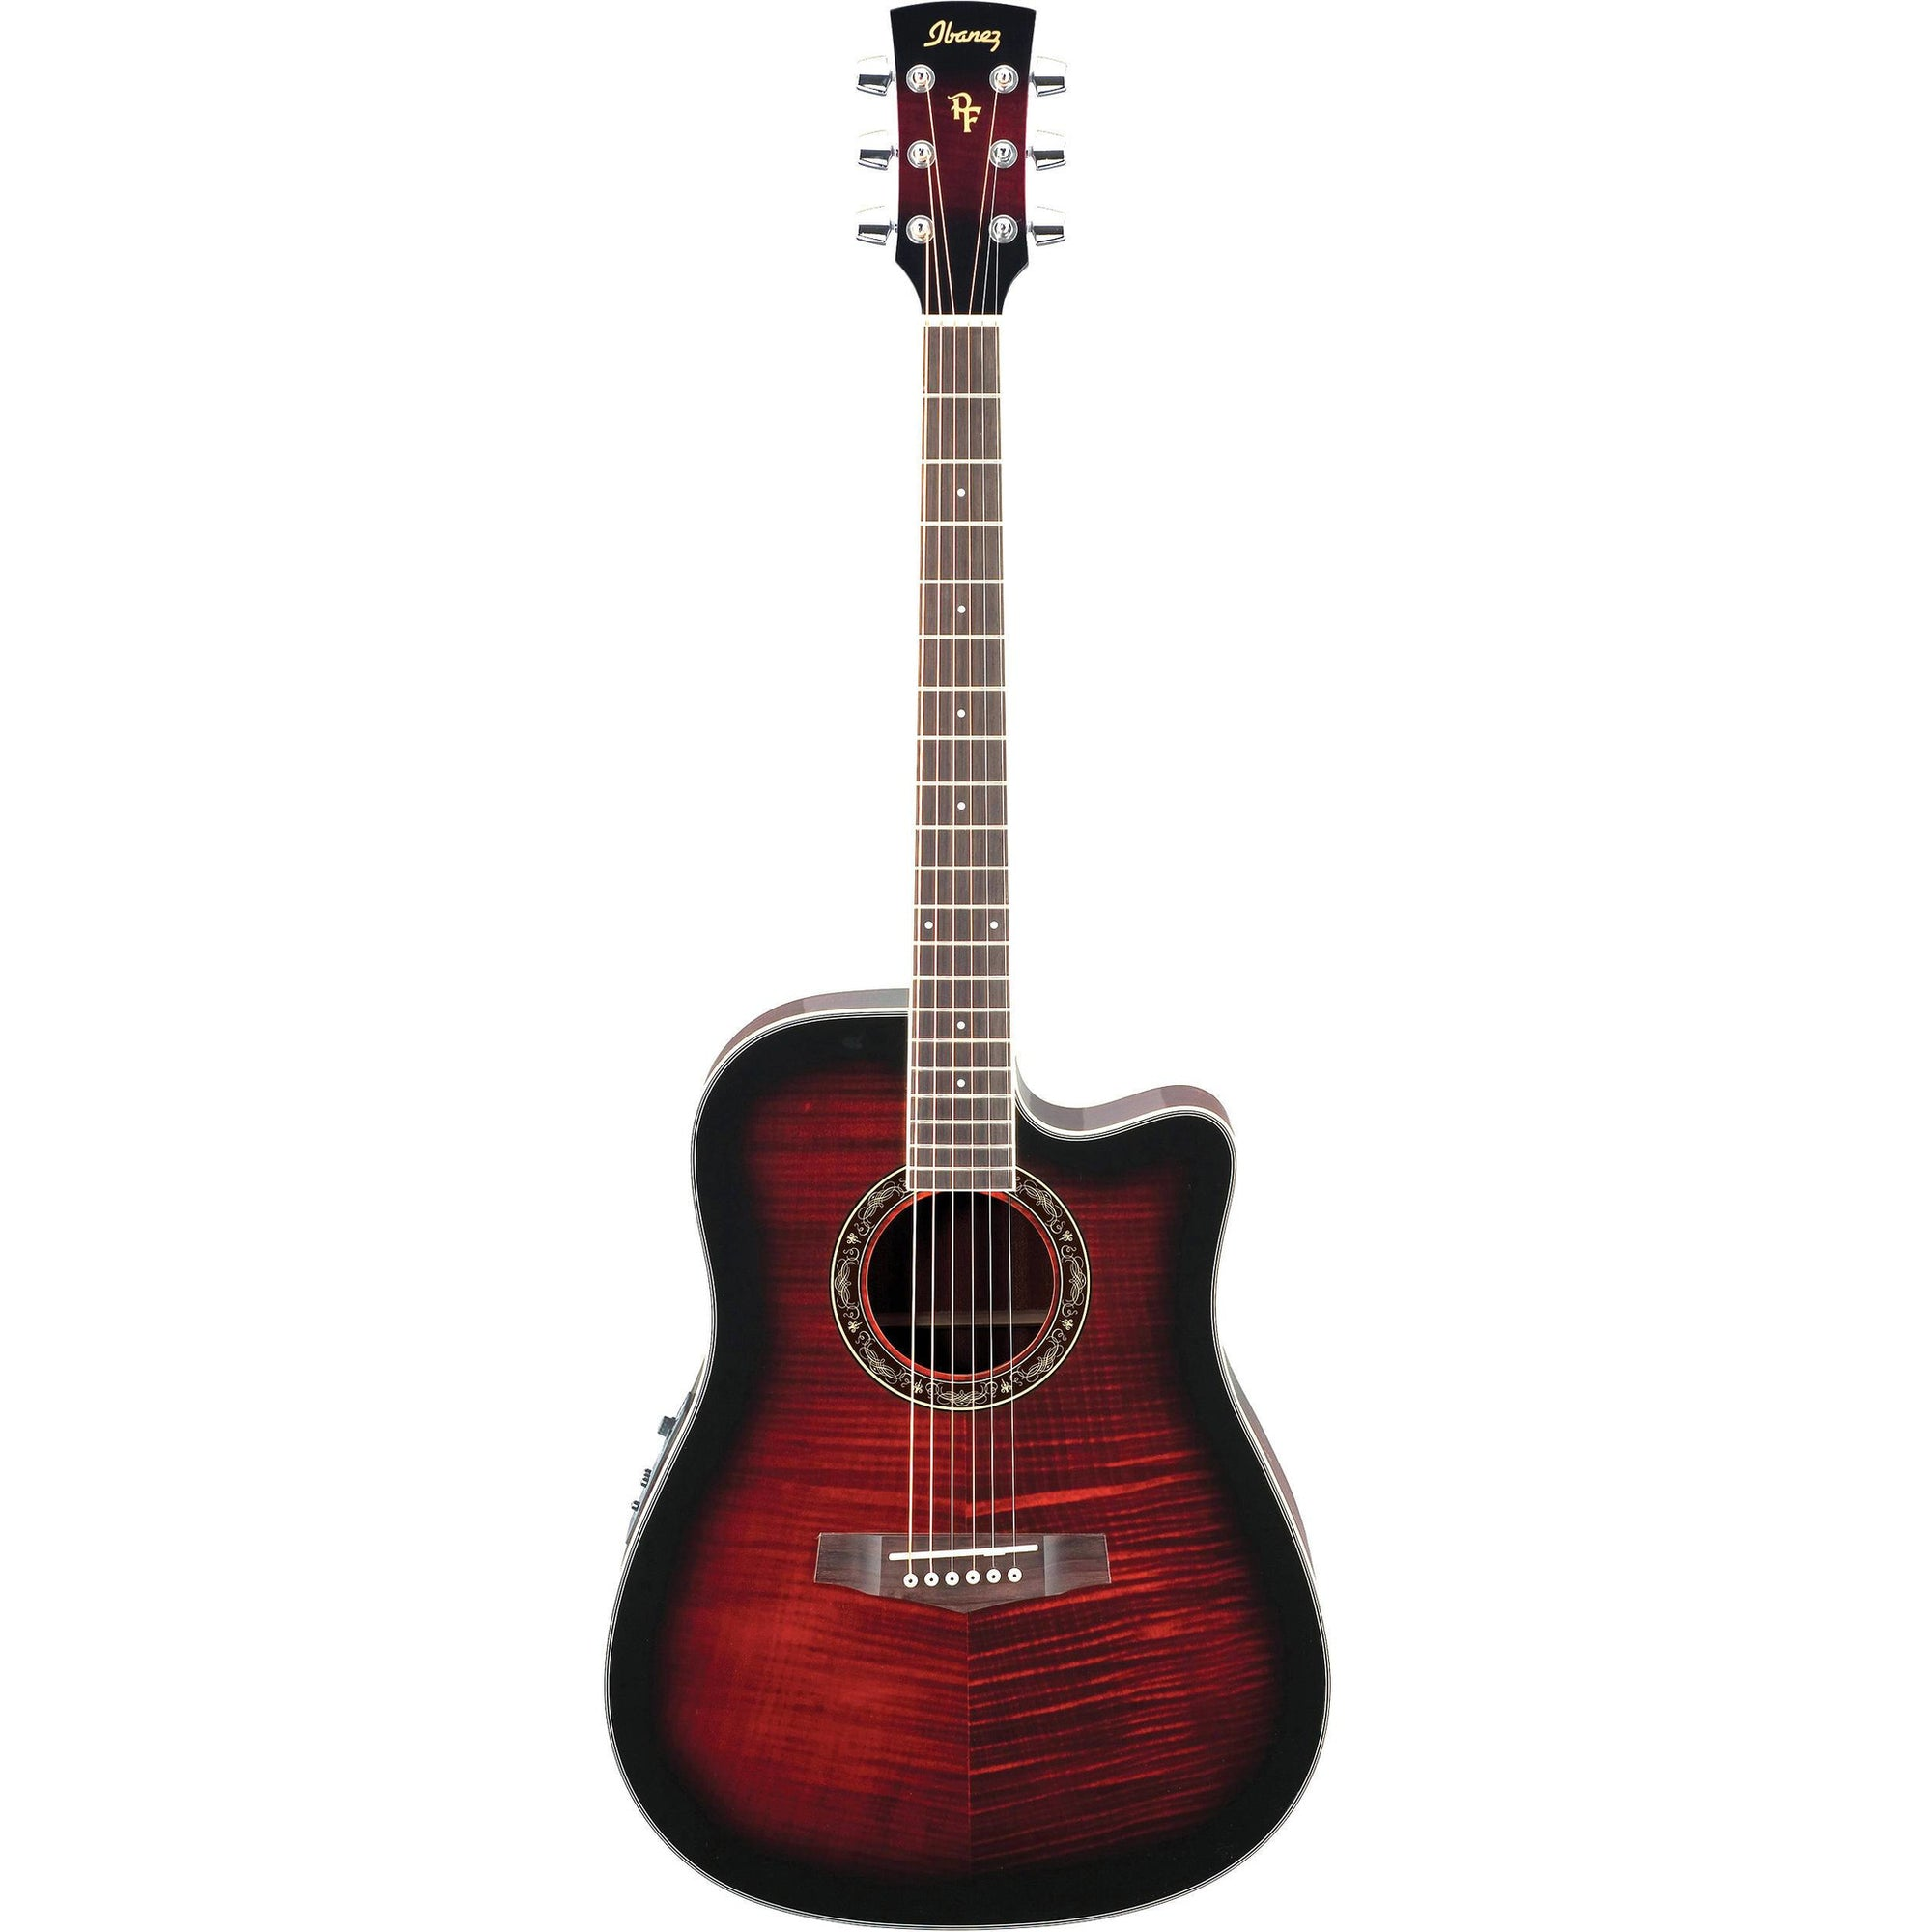 Ibanez PF28ECE Performance Acoustic-Electric Guitar - Transparent Red Sunburst